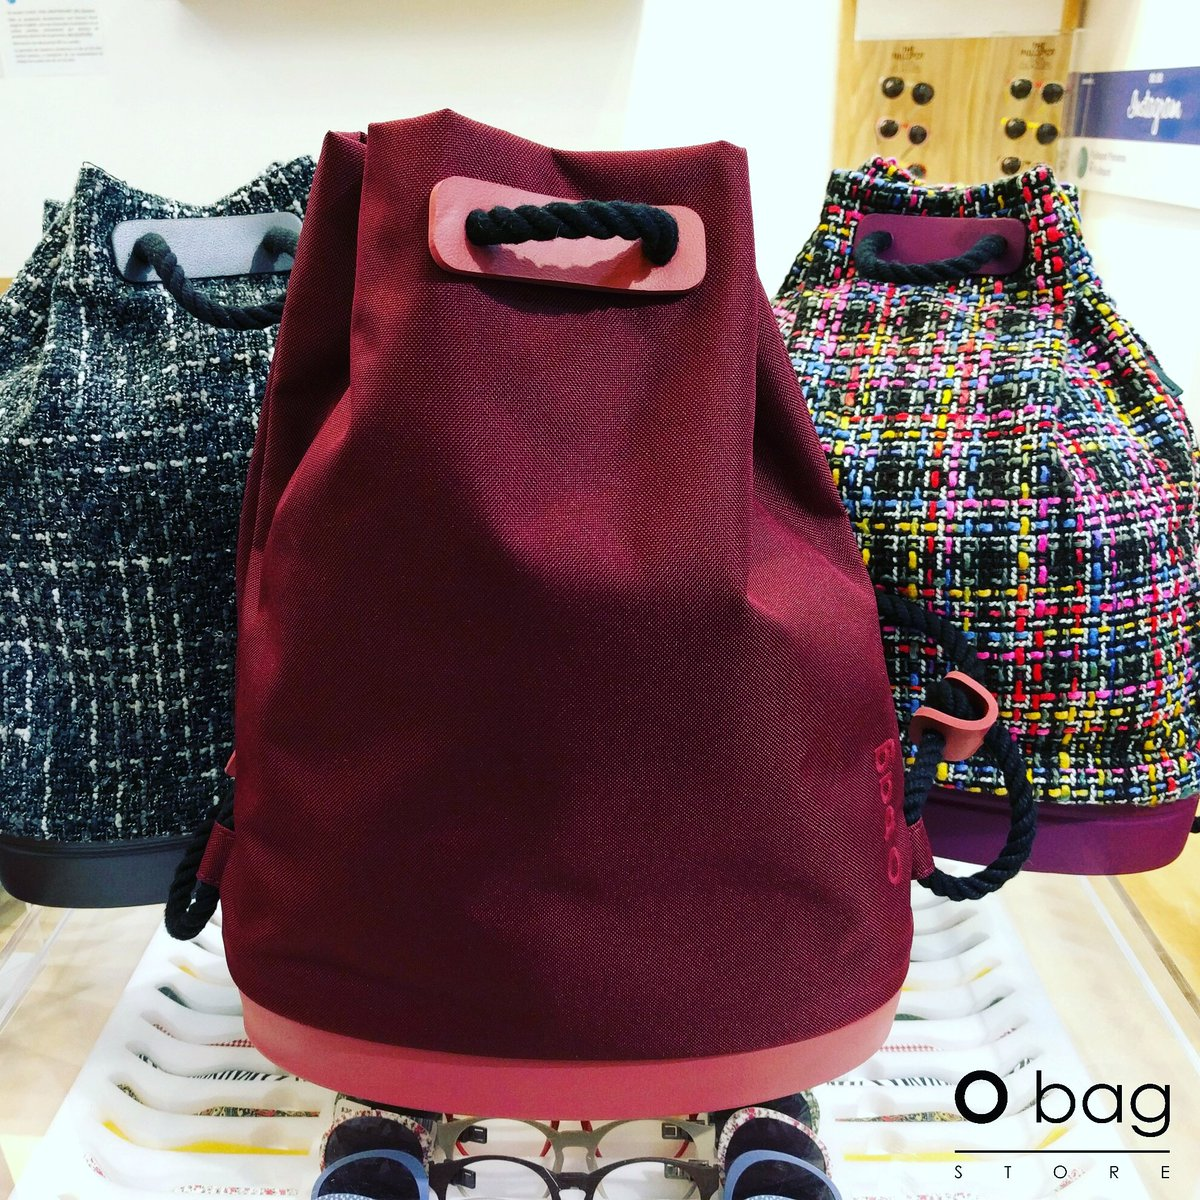 f48426c26 O bag Store Panamá on Twitter: